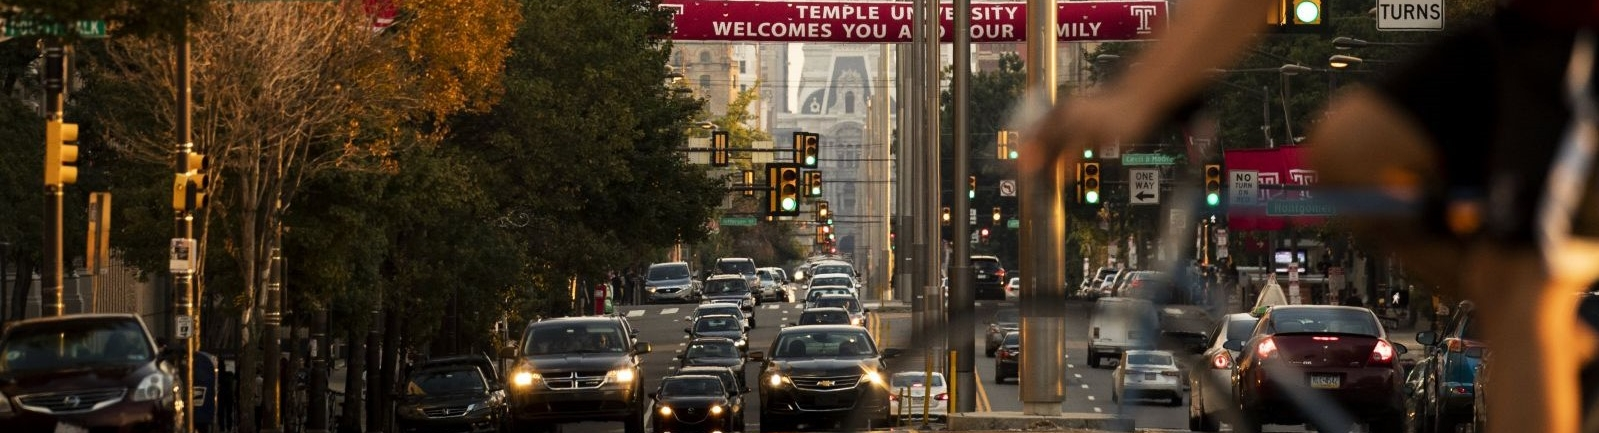 A Temple University banner flies above Broad Street in Philadelphia.